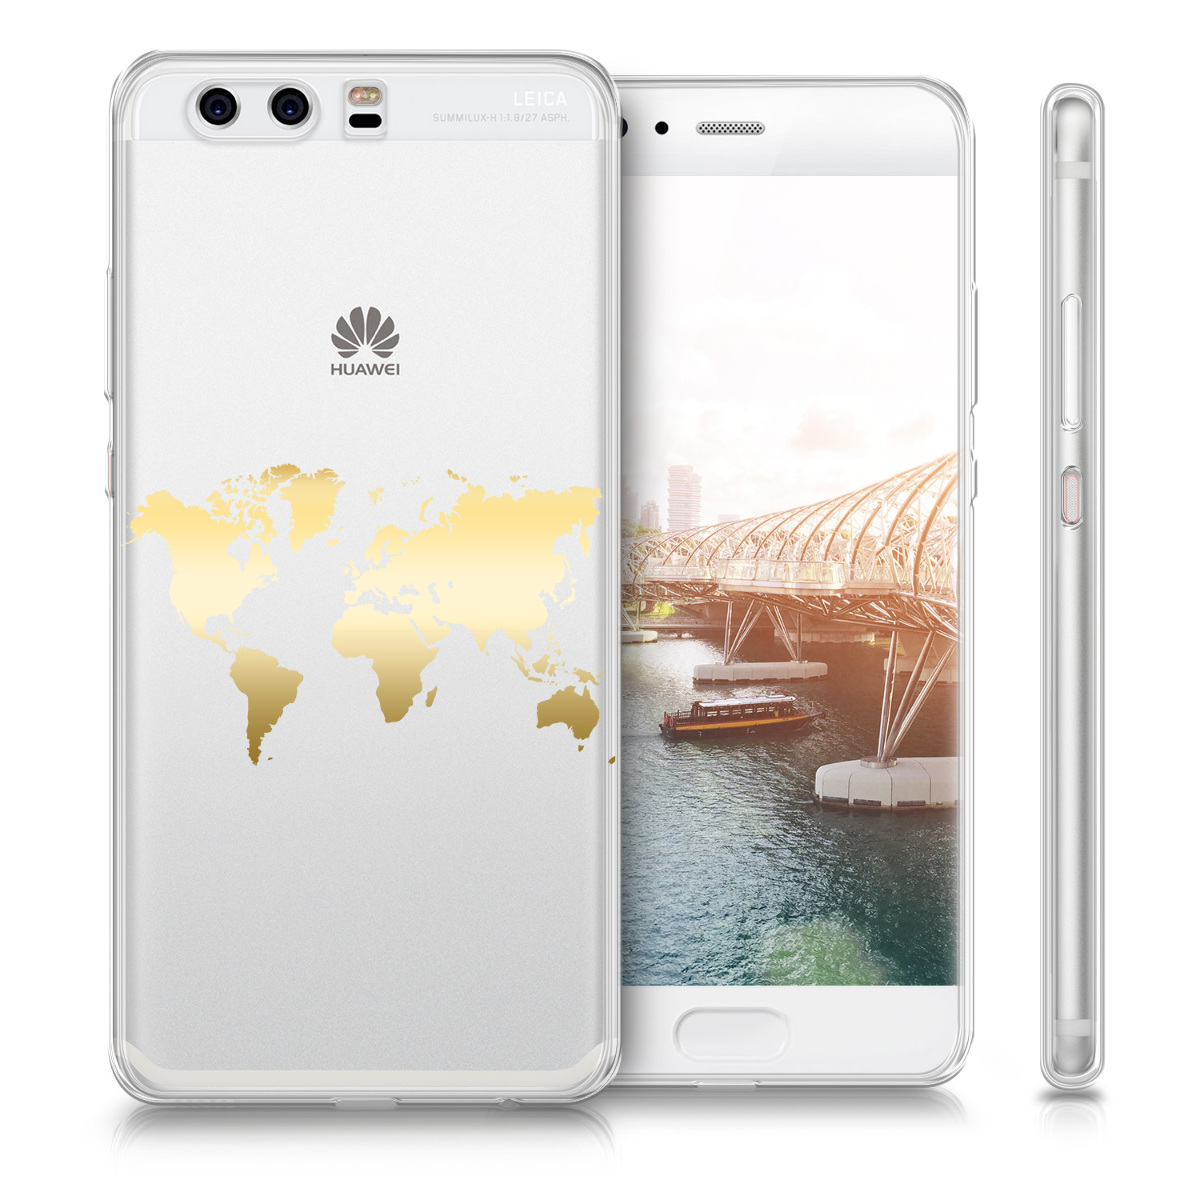 Coque pour huawei p10 housse housse silicone protection for Housse huawei p10